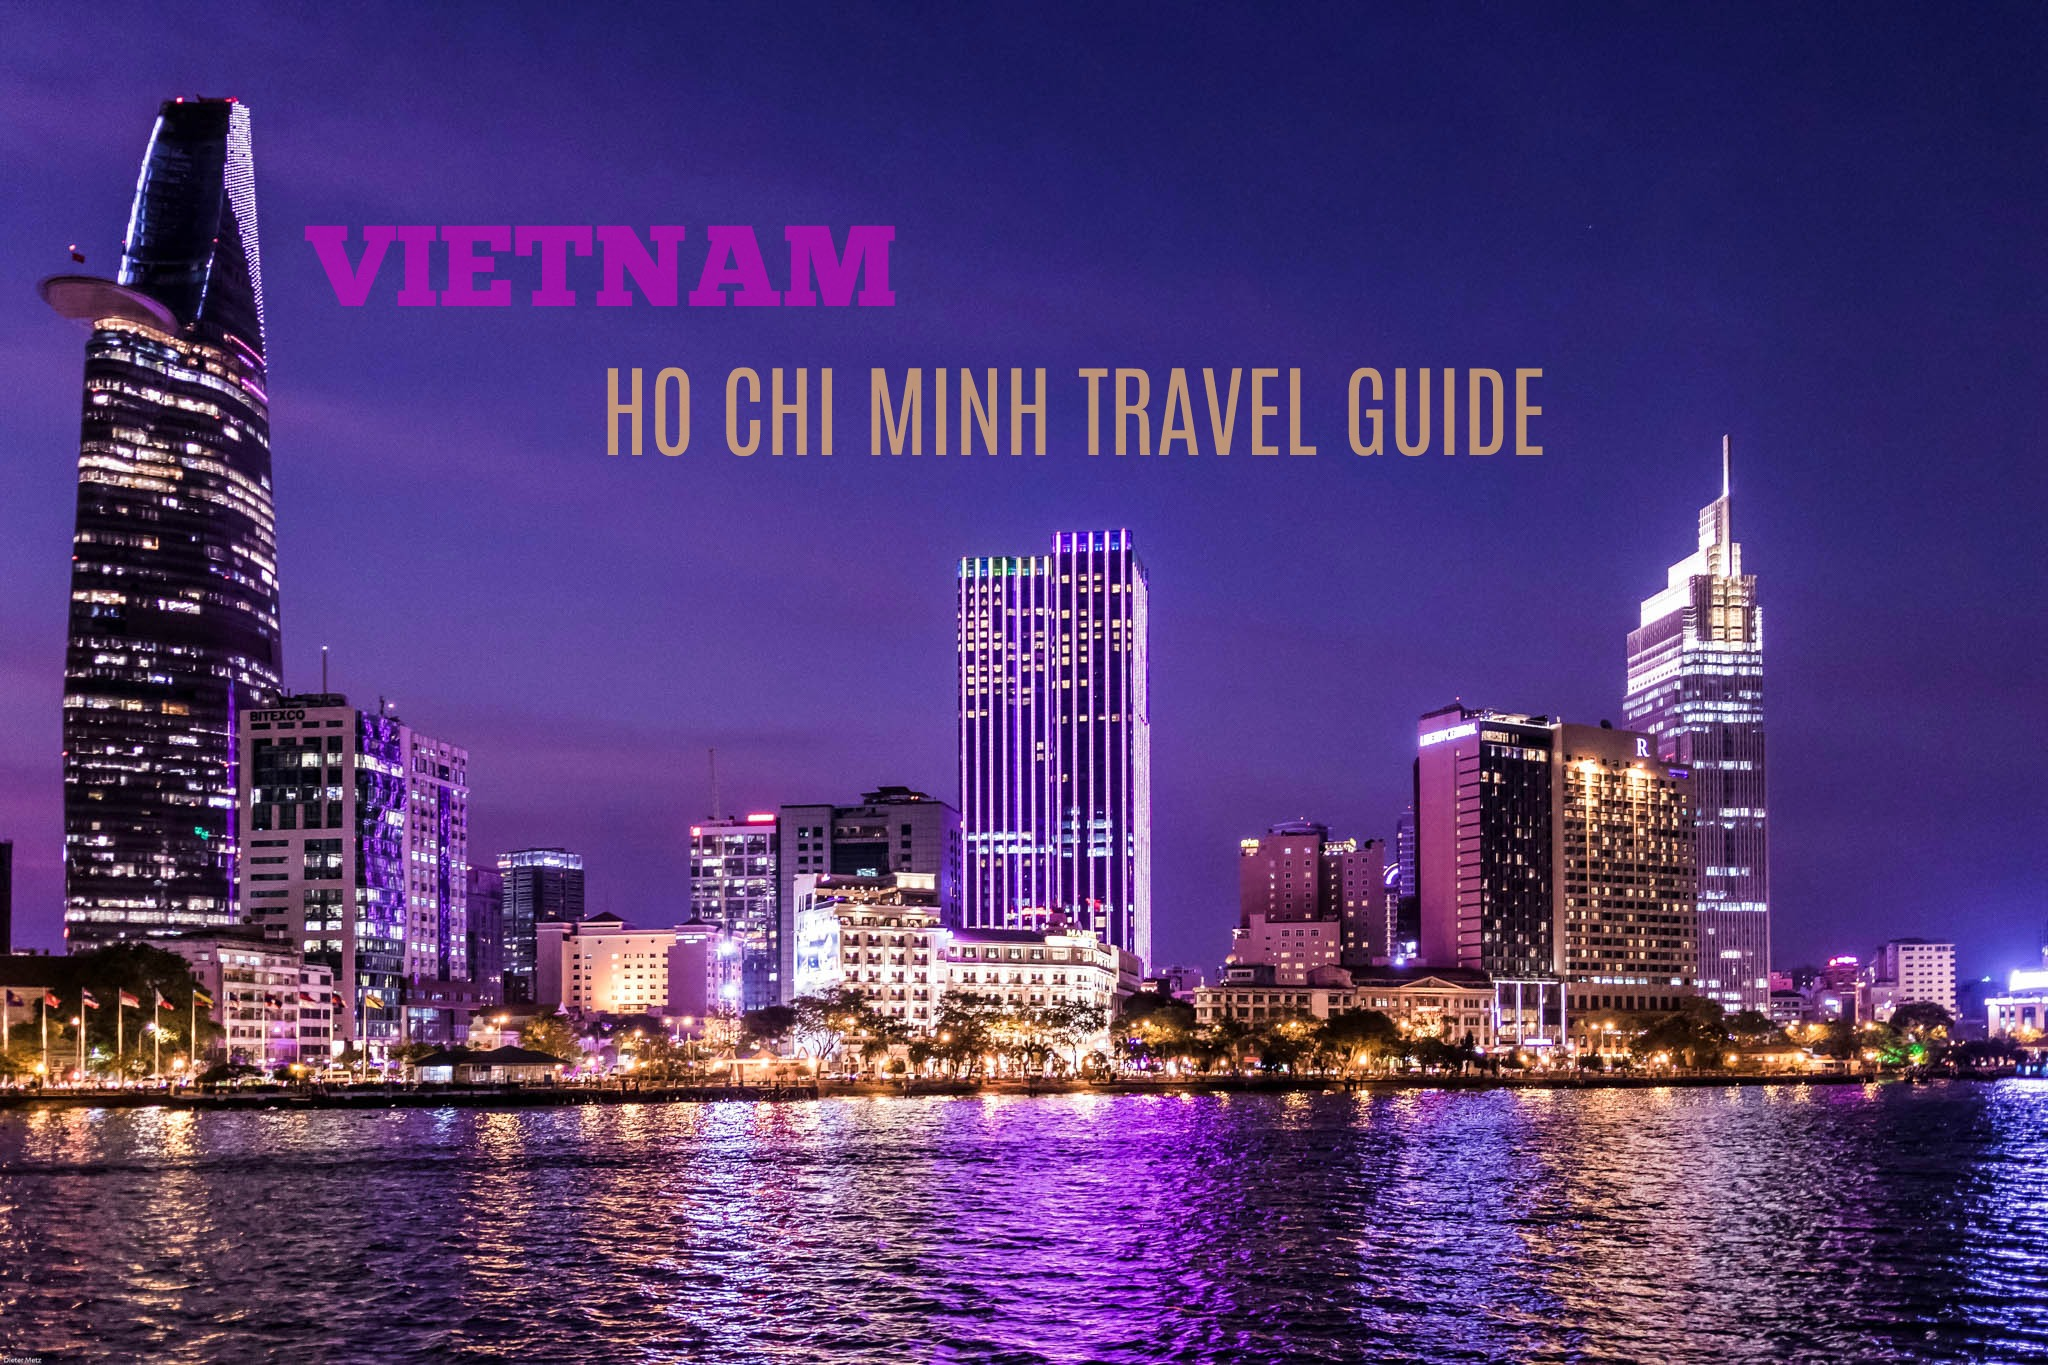 HO CHI MINH CITY TRAVEL GUIDE (Budget + Itinerary) 2019